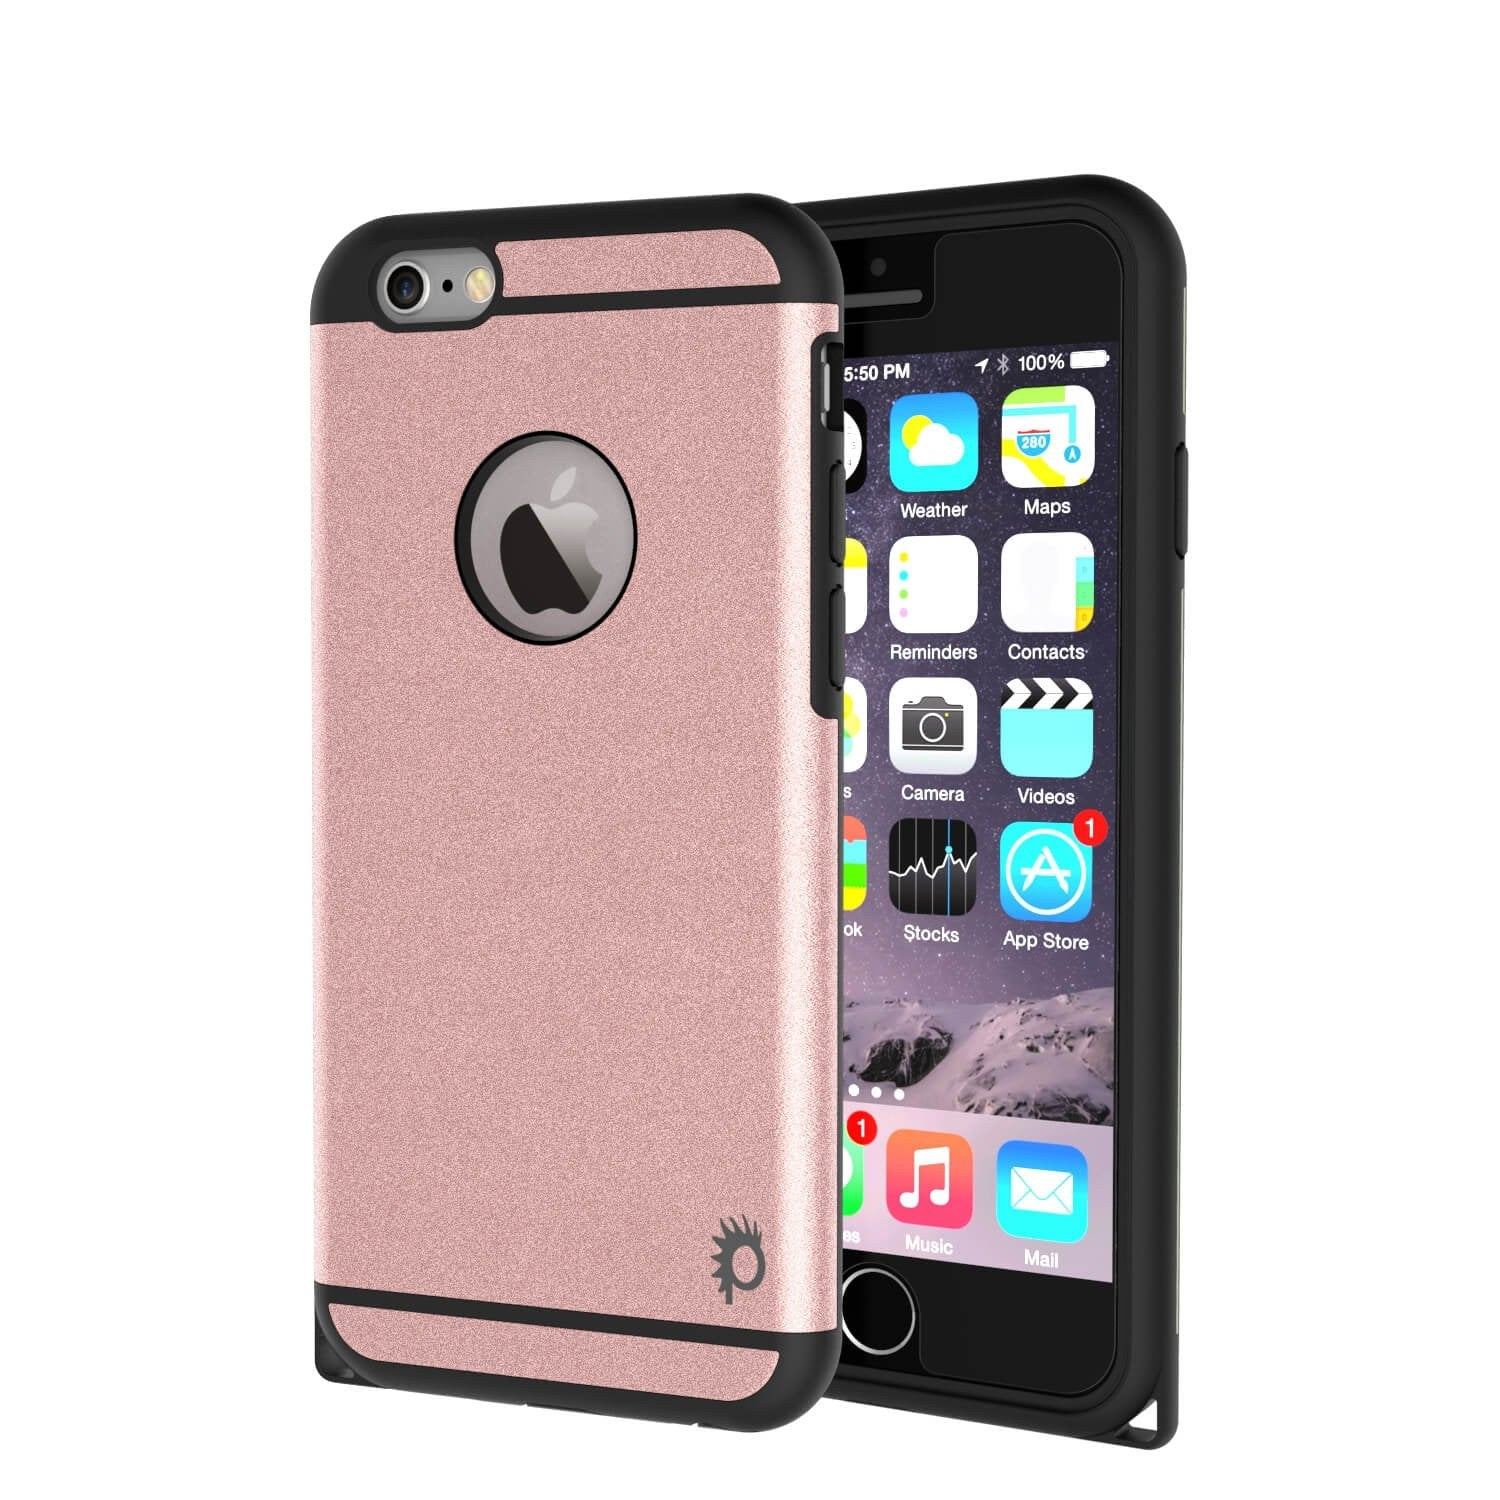 iPhone 6s Plus/6 Plus  Case PunkCase Galactic Rose Gold Slim w/ Tempered Glass | Lifetime Warranty